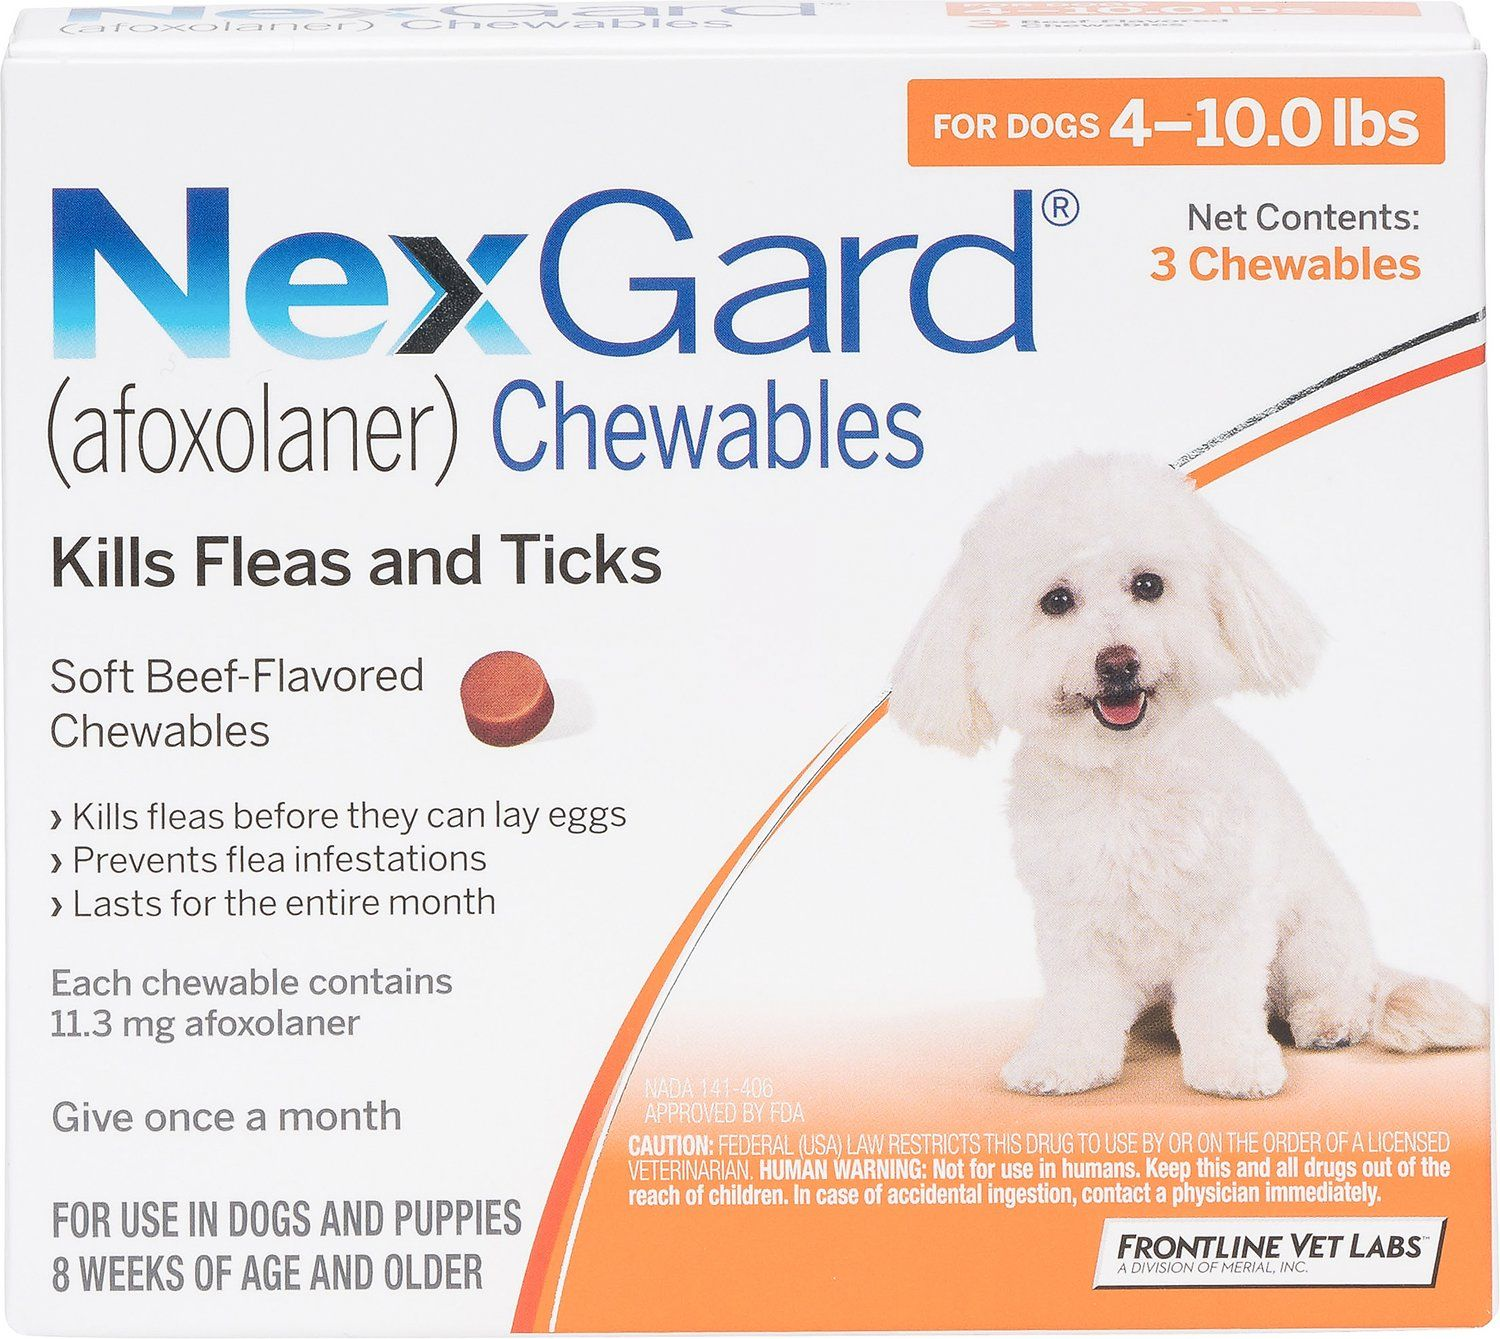 NexGard Chewable Tablets for Dogs, 410 lbs, 3 treatments